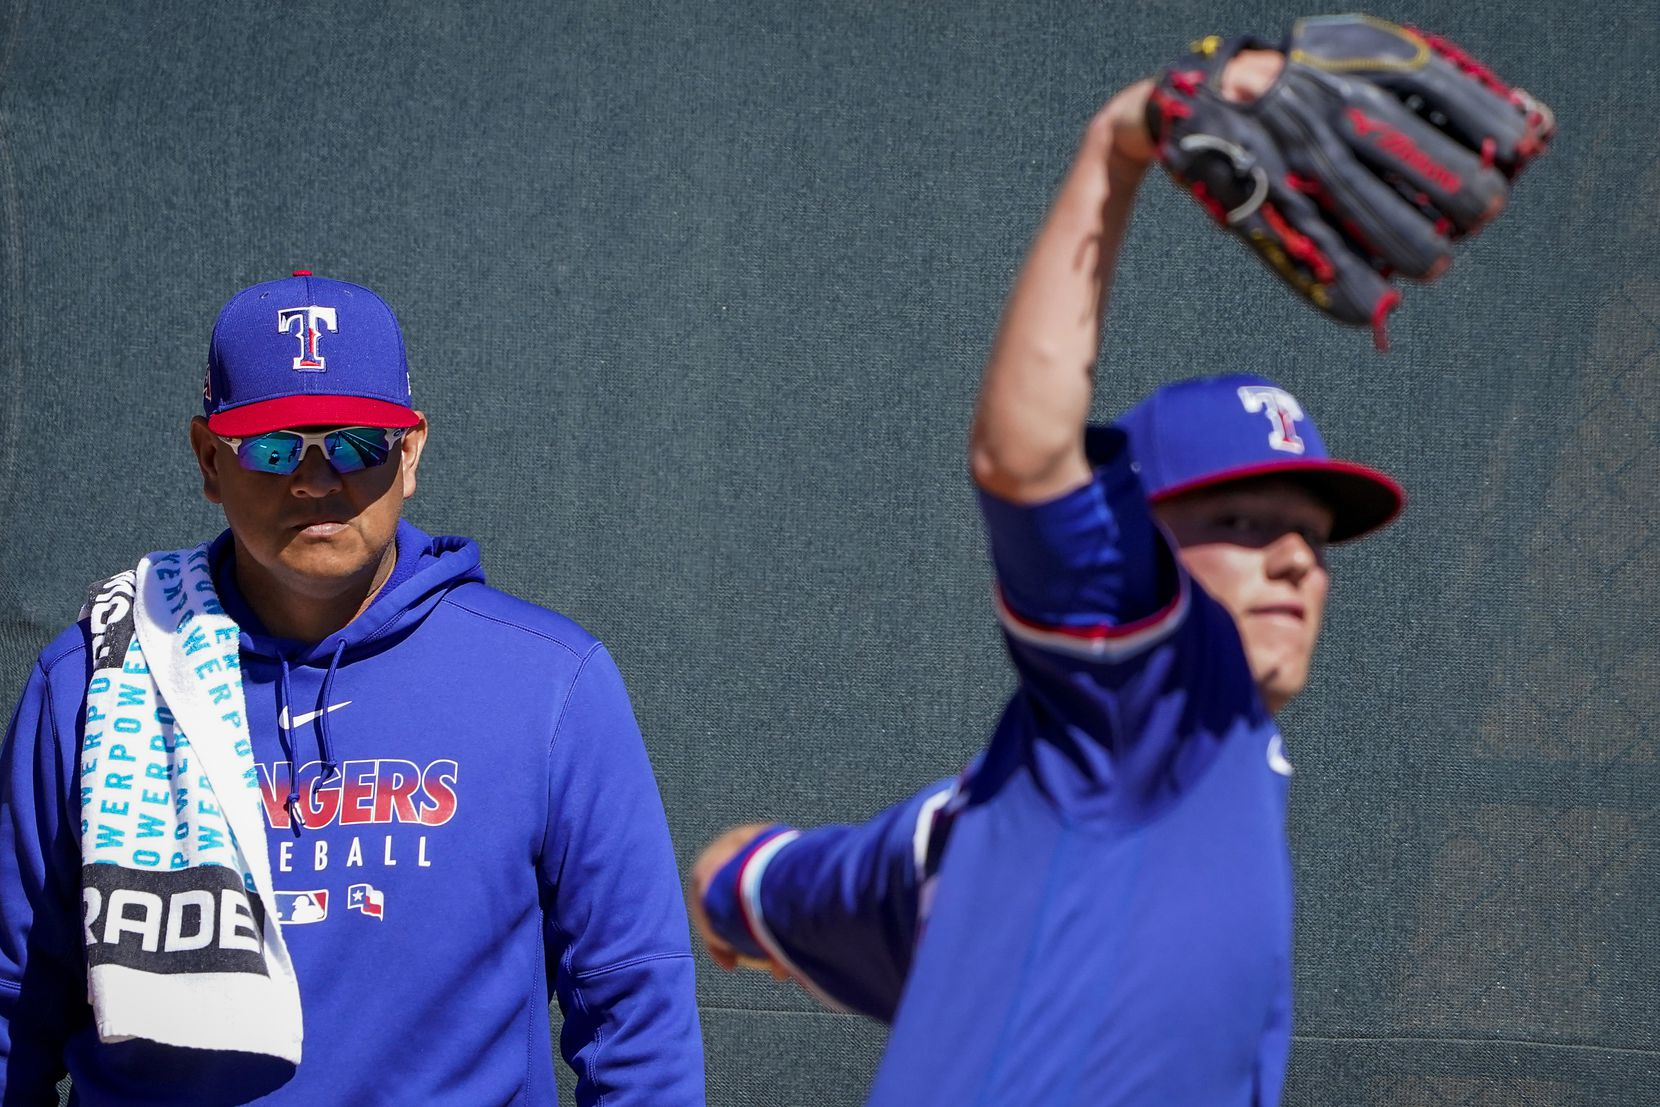 Texas Rangers pitching coach Julio Rangel watches pitcher Kolby Allard warm up in the bullpen before a spring training game against the Colorado Rockies at Salt River Fields at Talking Stick on Wednesday, Feb. 26, 2020, in Scottsdale, Ariz.